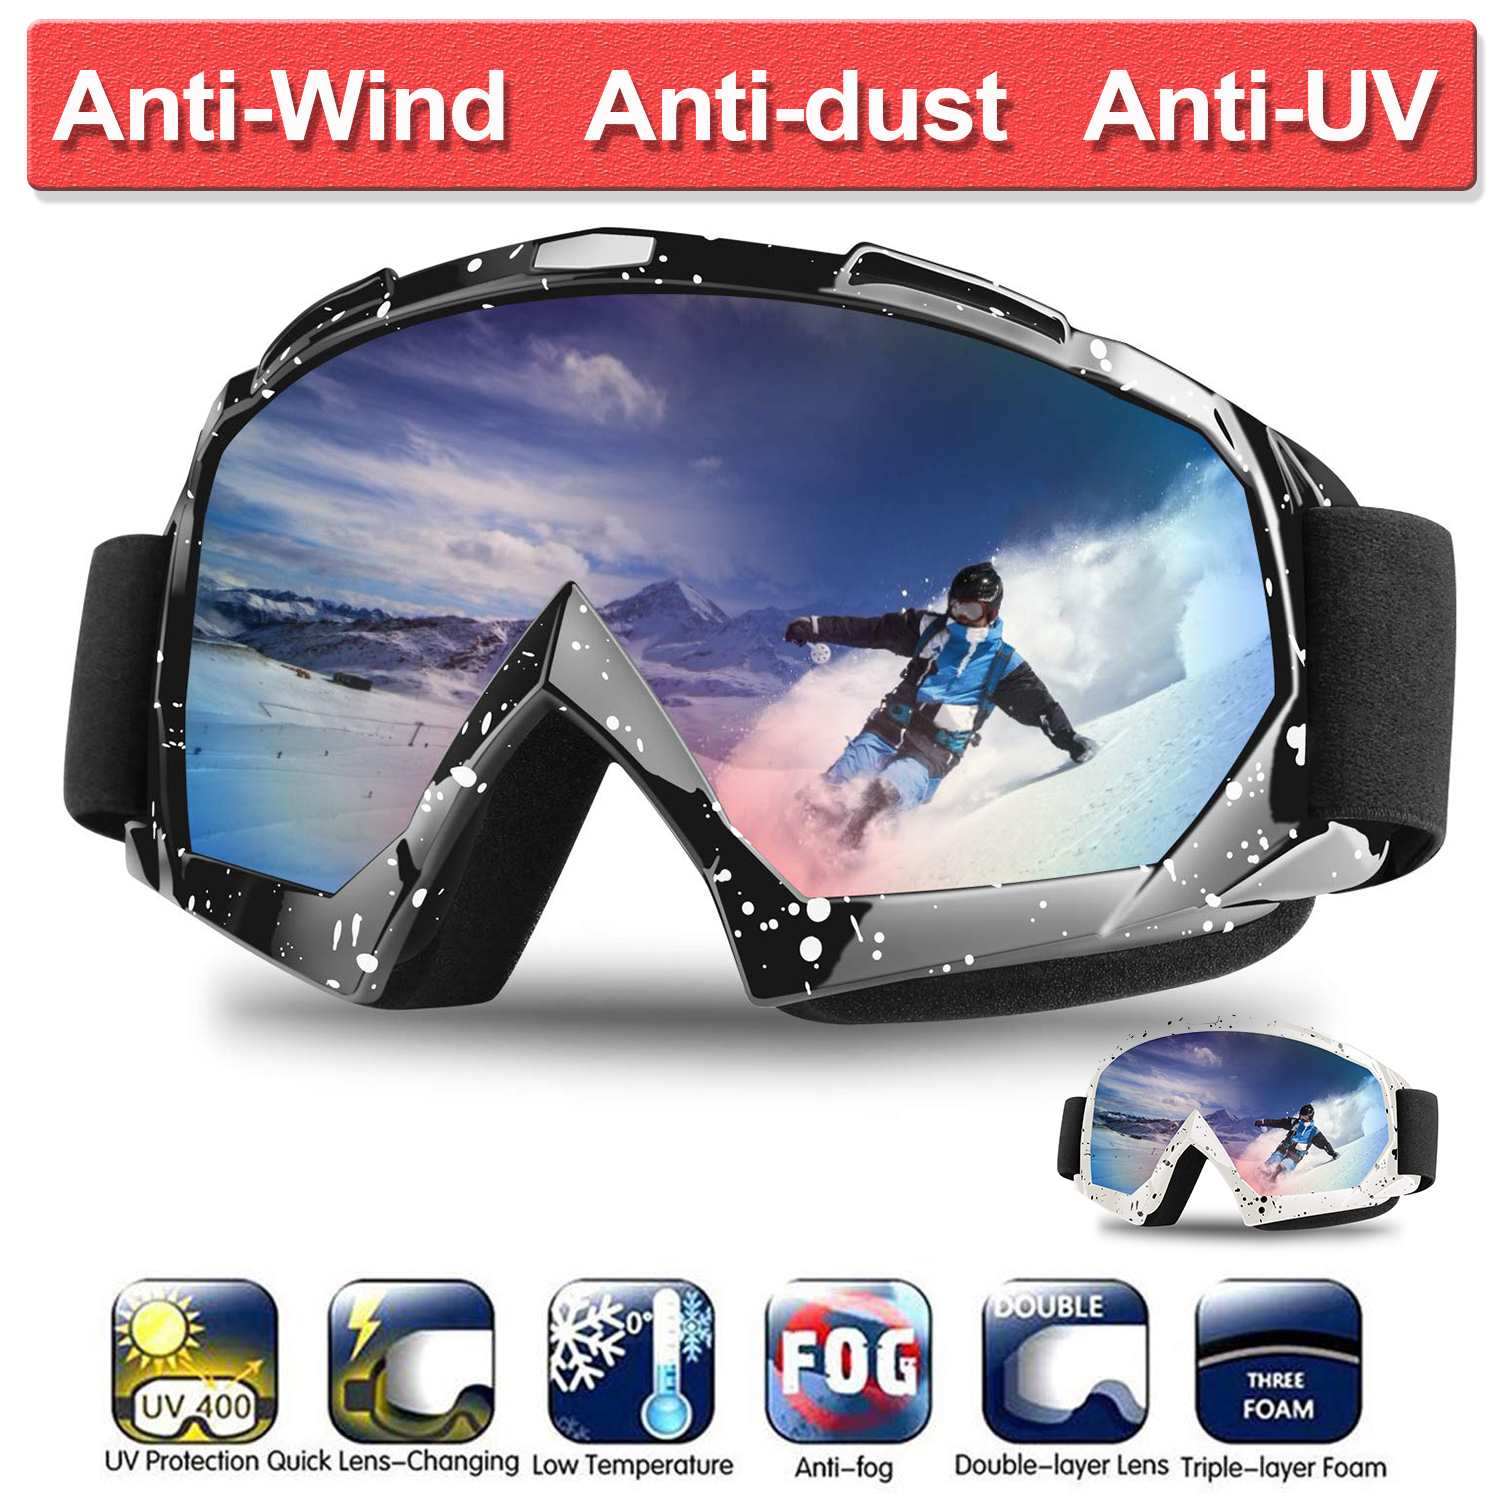 Ski Goggles Double Layers UV Anti-fog Big Ski Mask Glasses Skiing Snow Snowboard Goggles Men Women Ski Eyewear D35